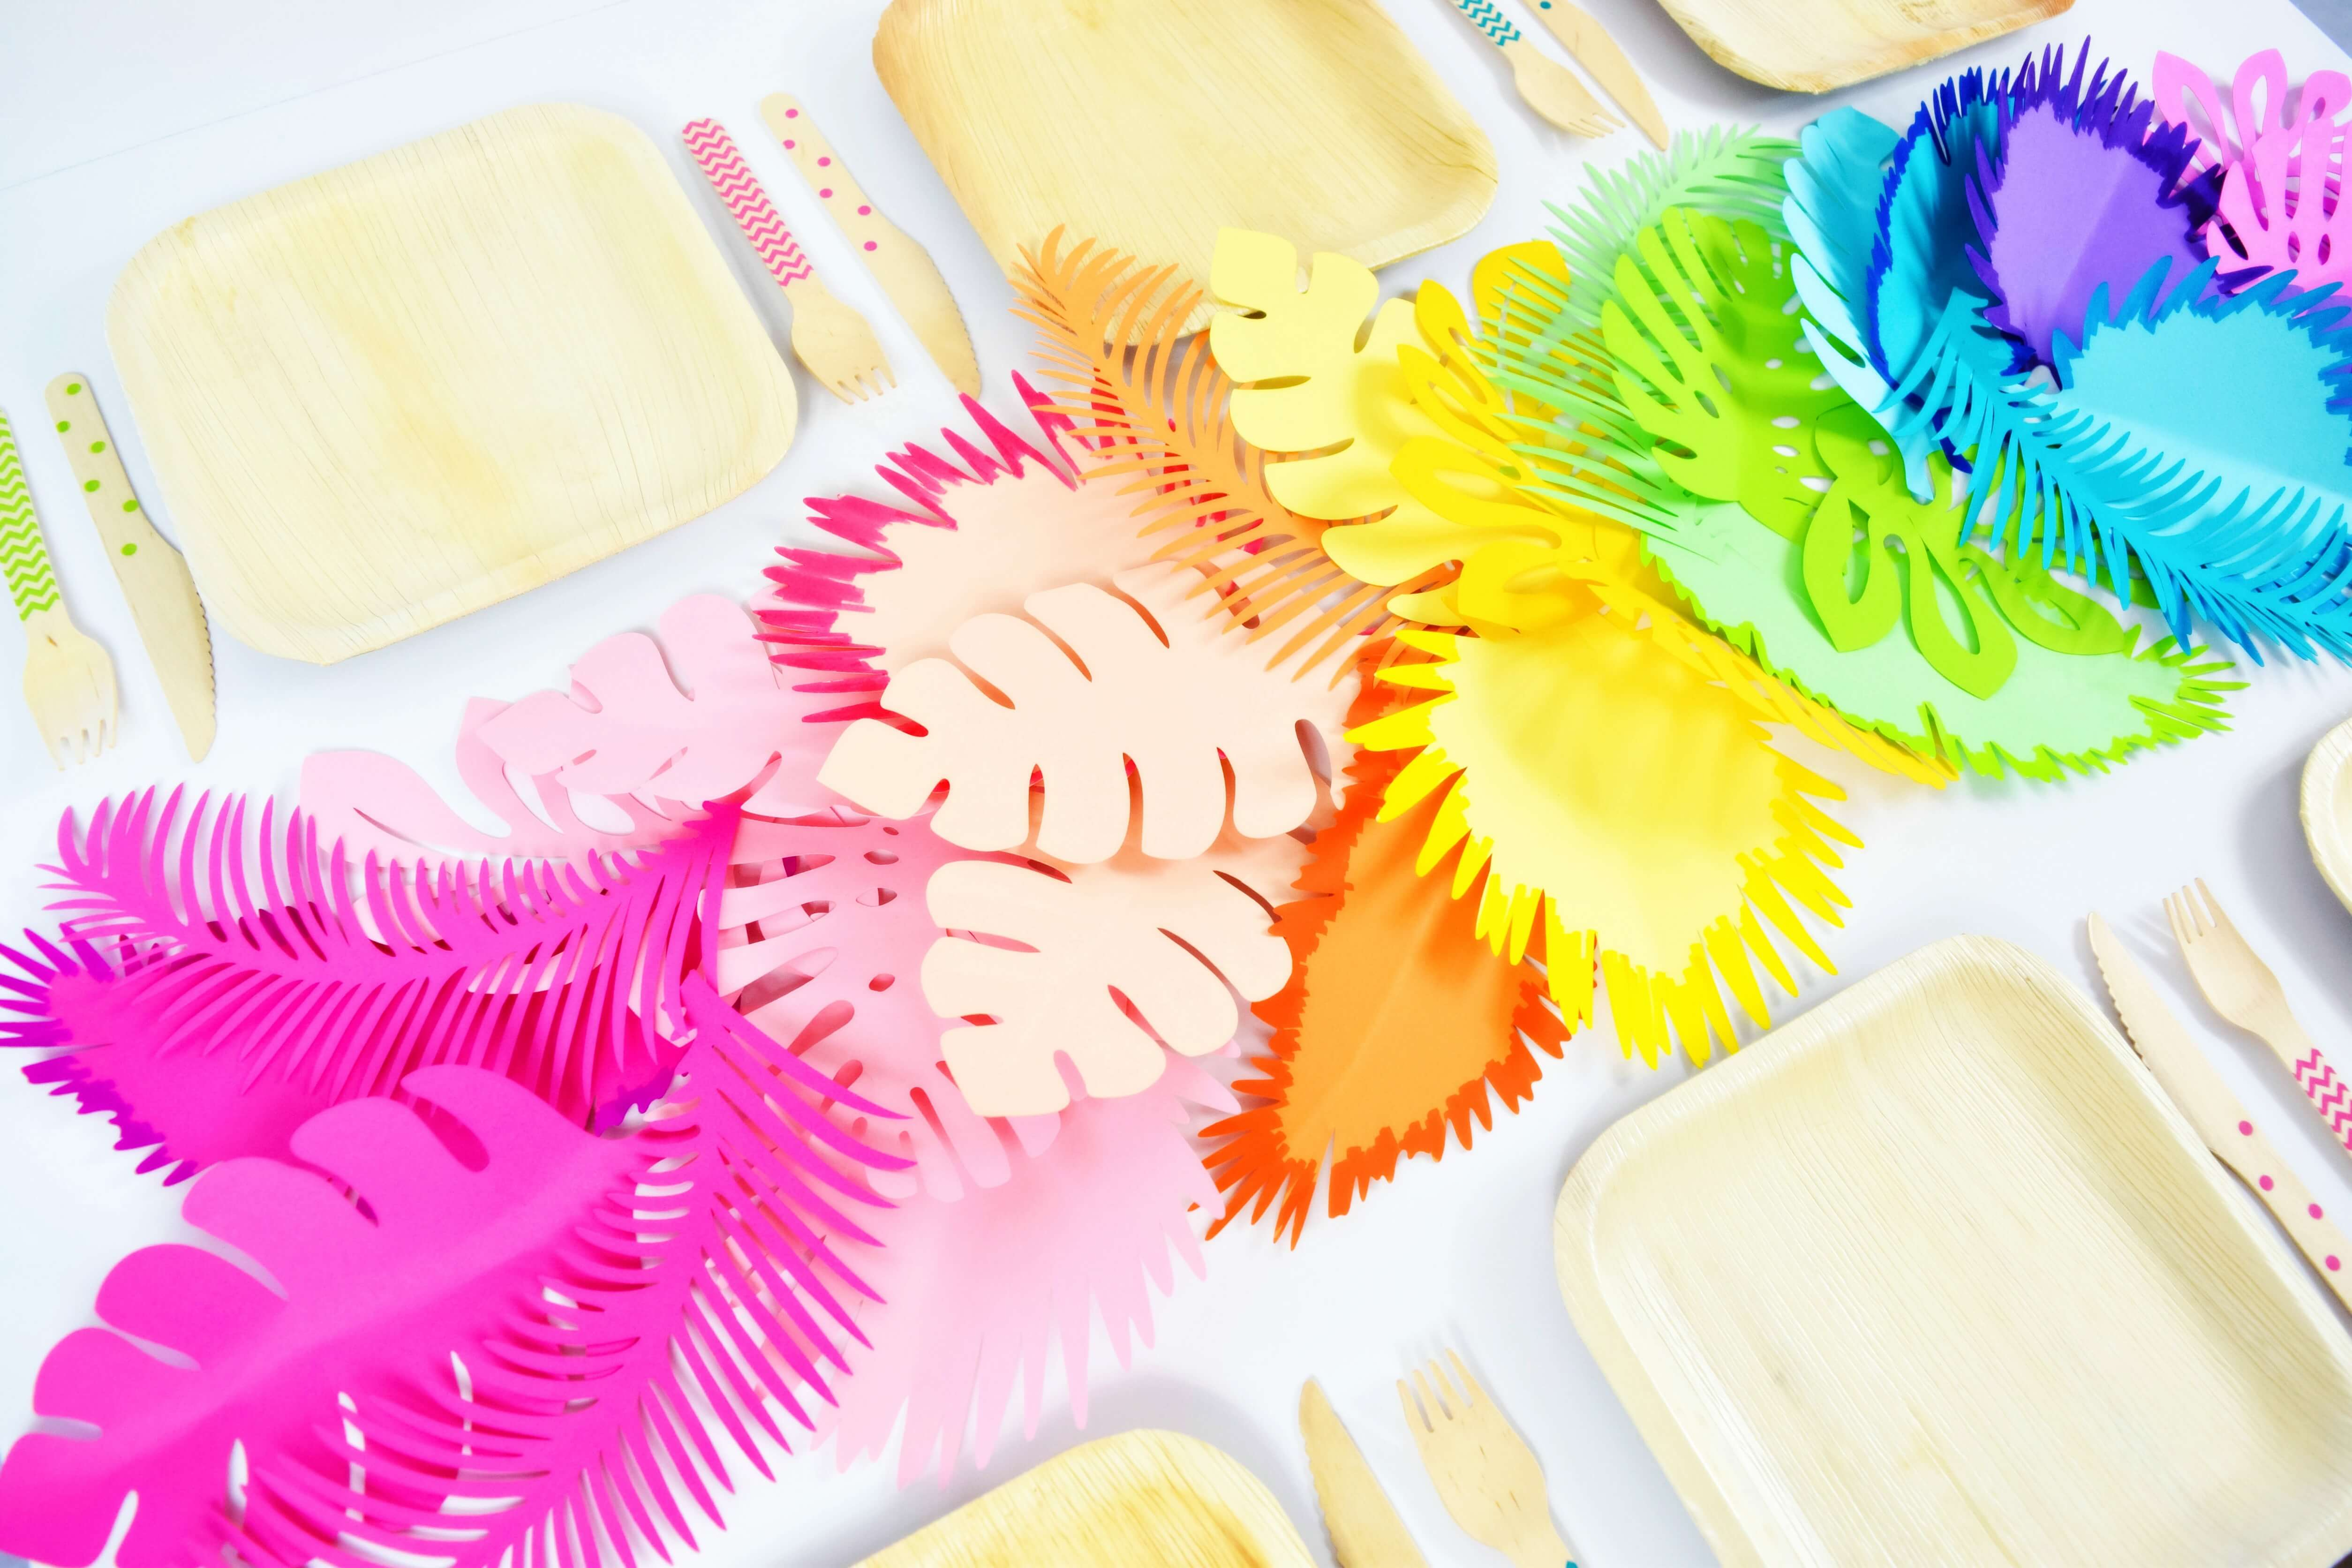 Hawaiian Party Decorations – DIY Ombre Rainbow Paper Flower Table Runner